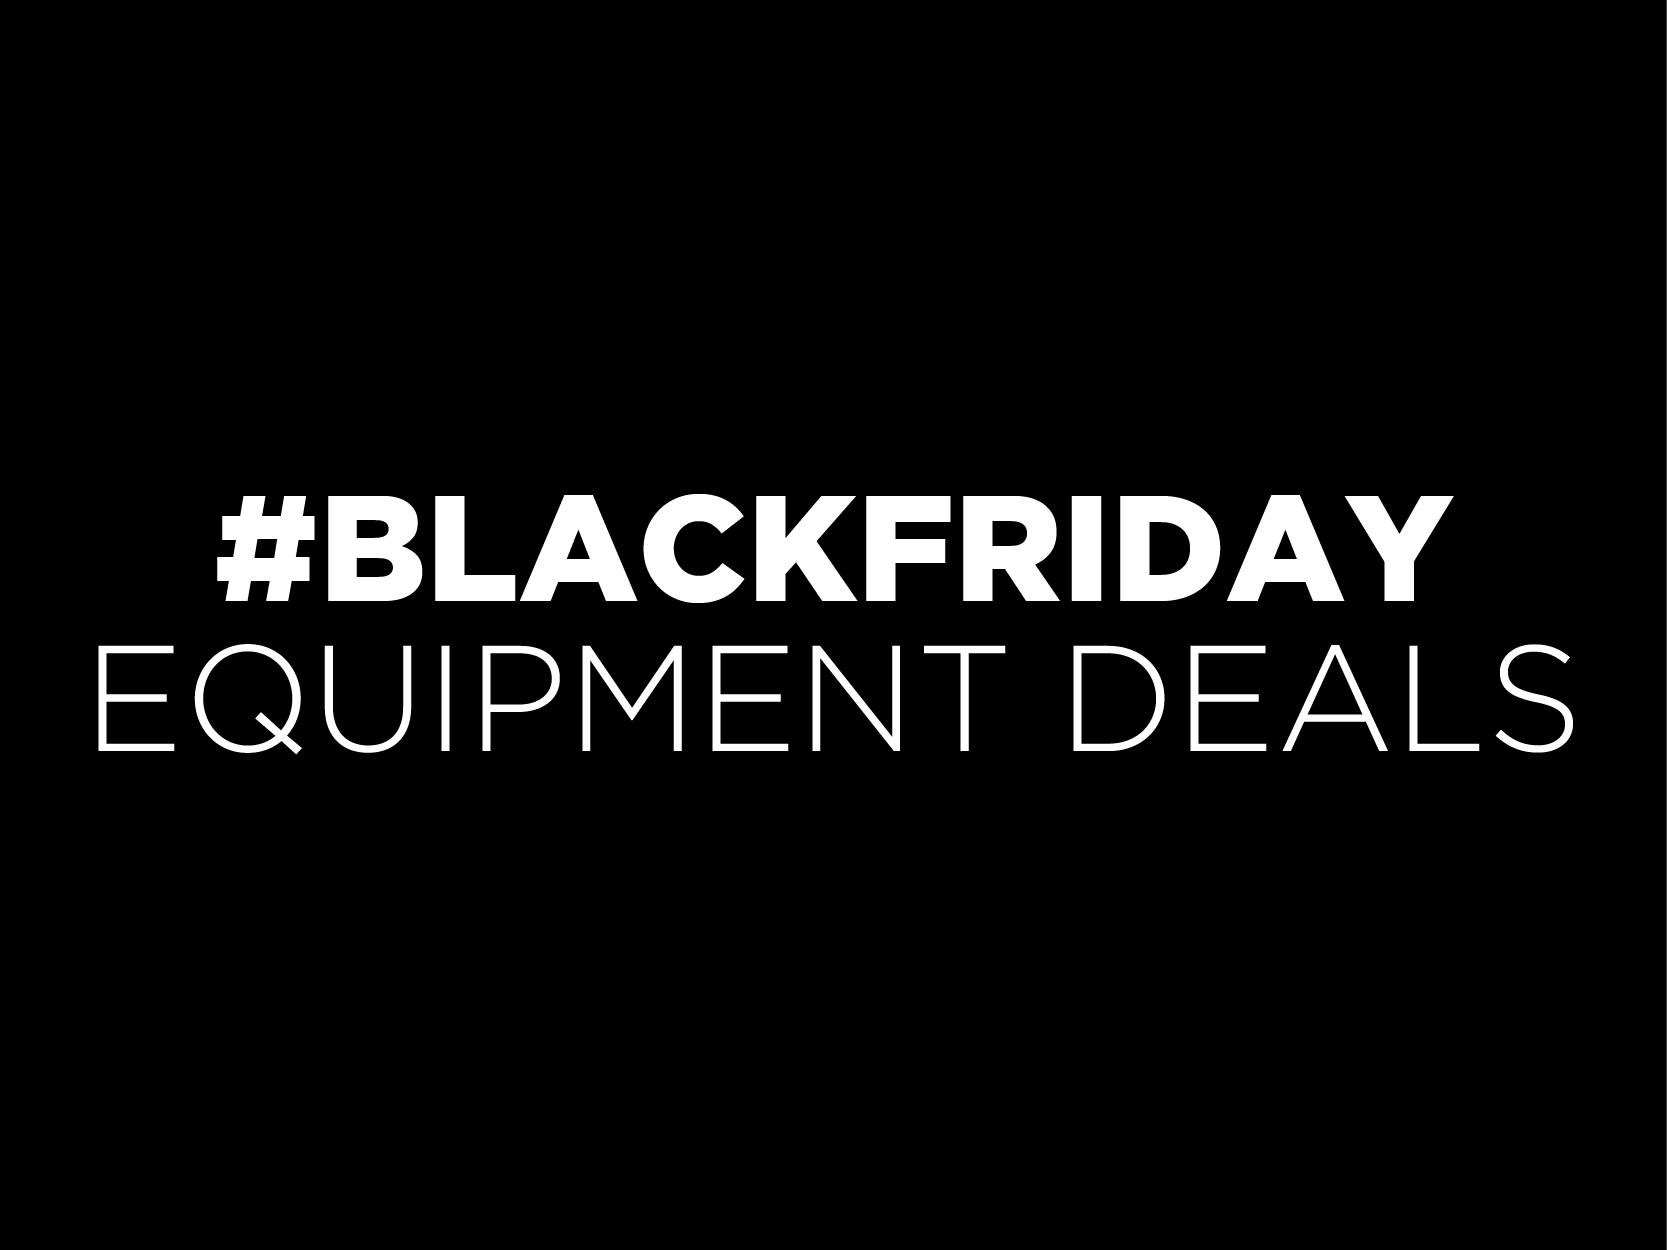 Black Friday Equipment Deals